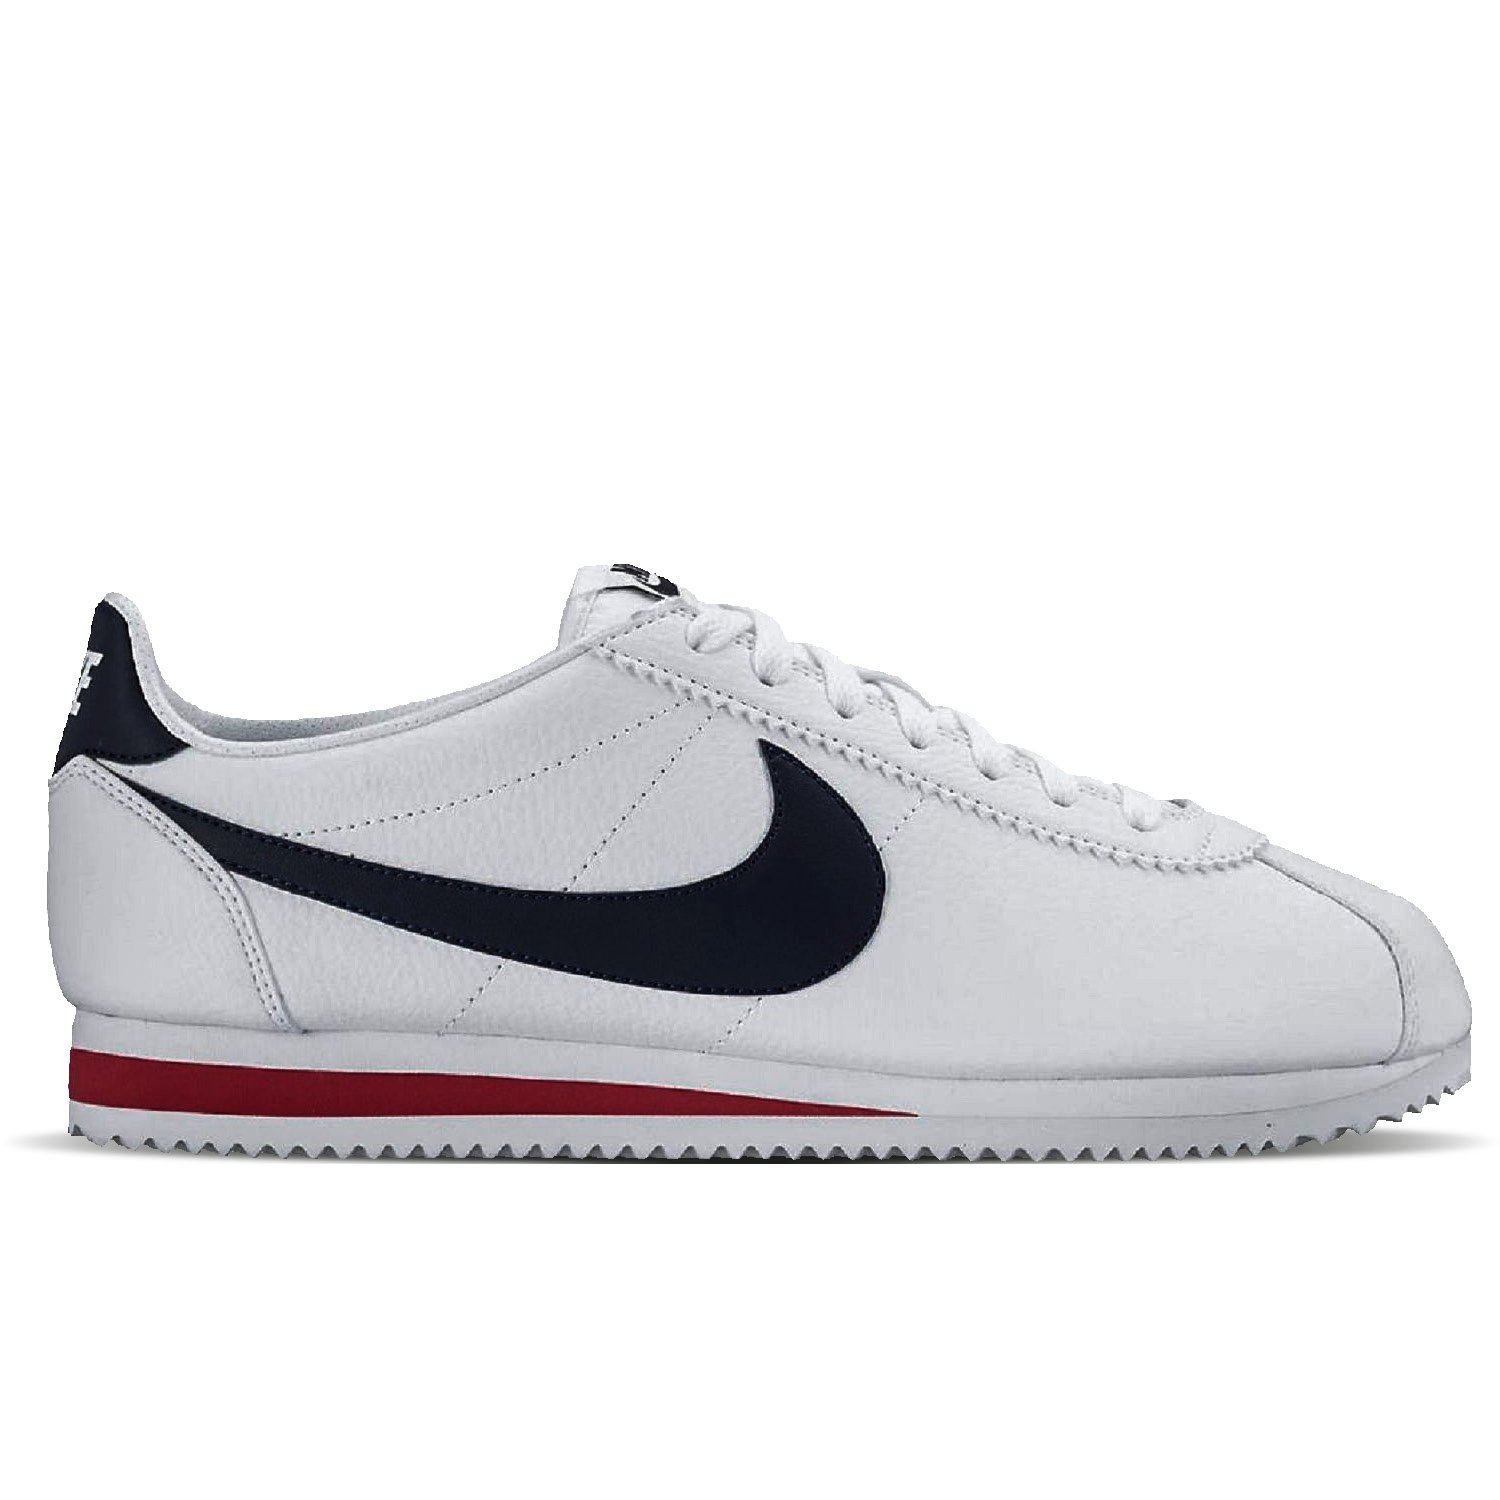 Nike Classic Cortez Leather White/Midnight Navy 749571 146